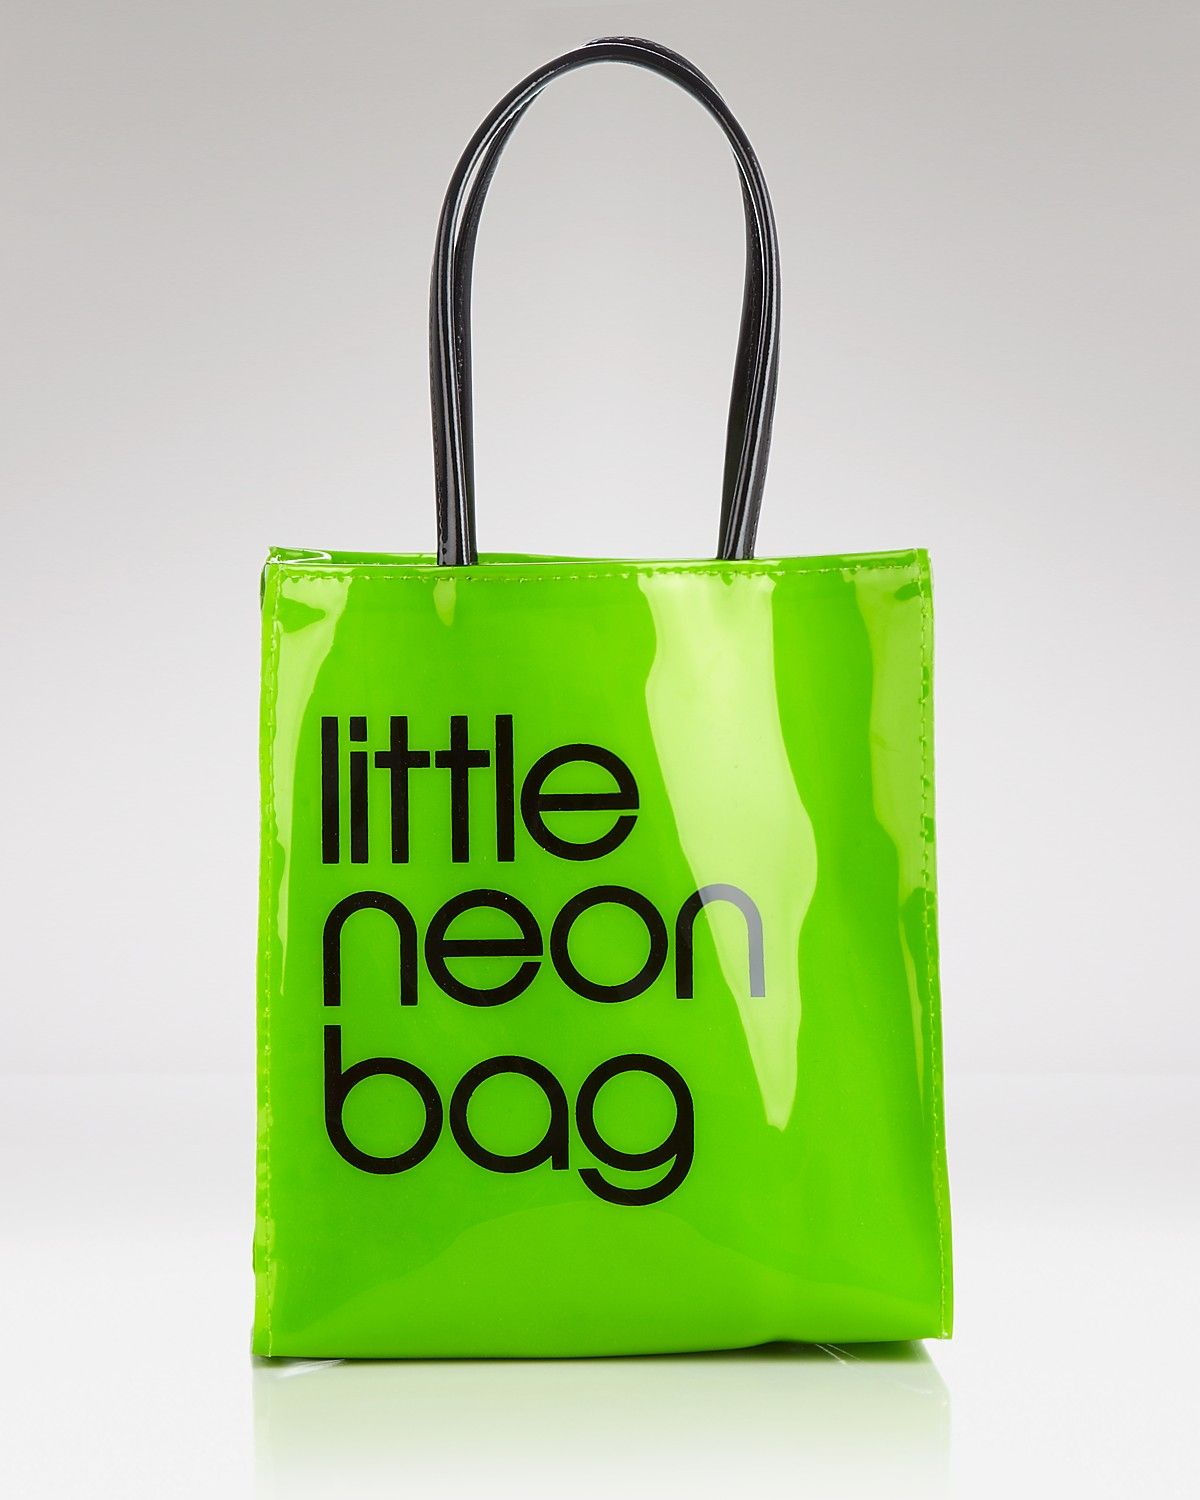 8be52c0c61b5 Bloomingdale s Tote - Little Neon Bag - 100% Exclusive